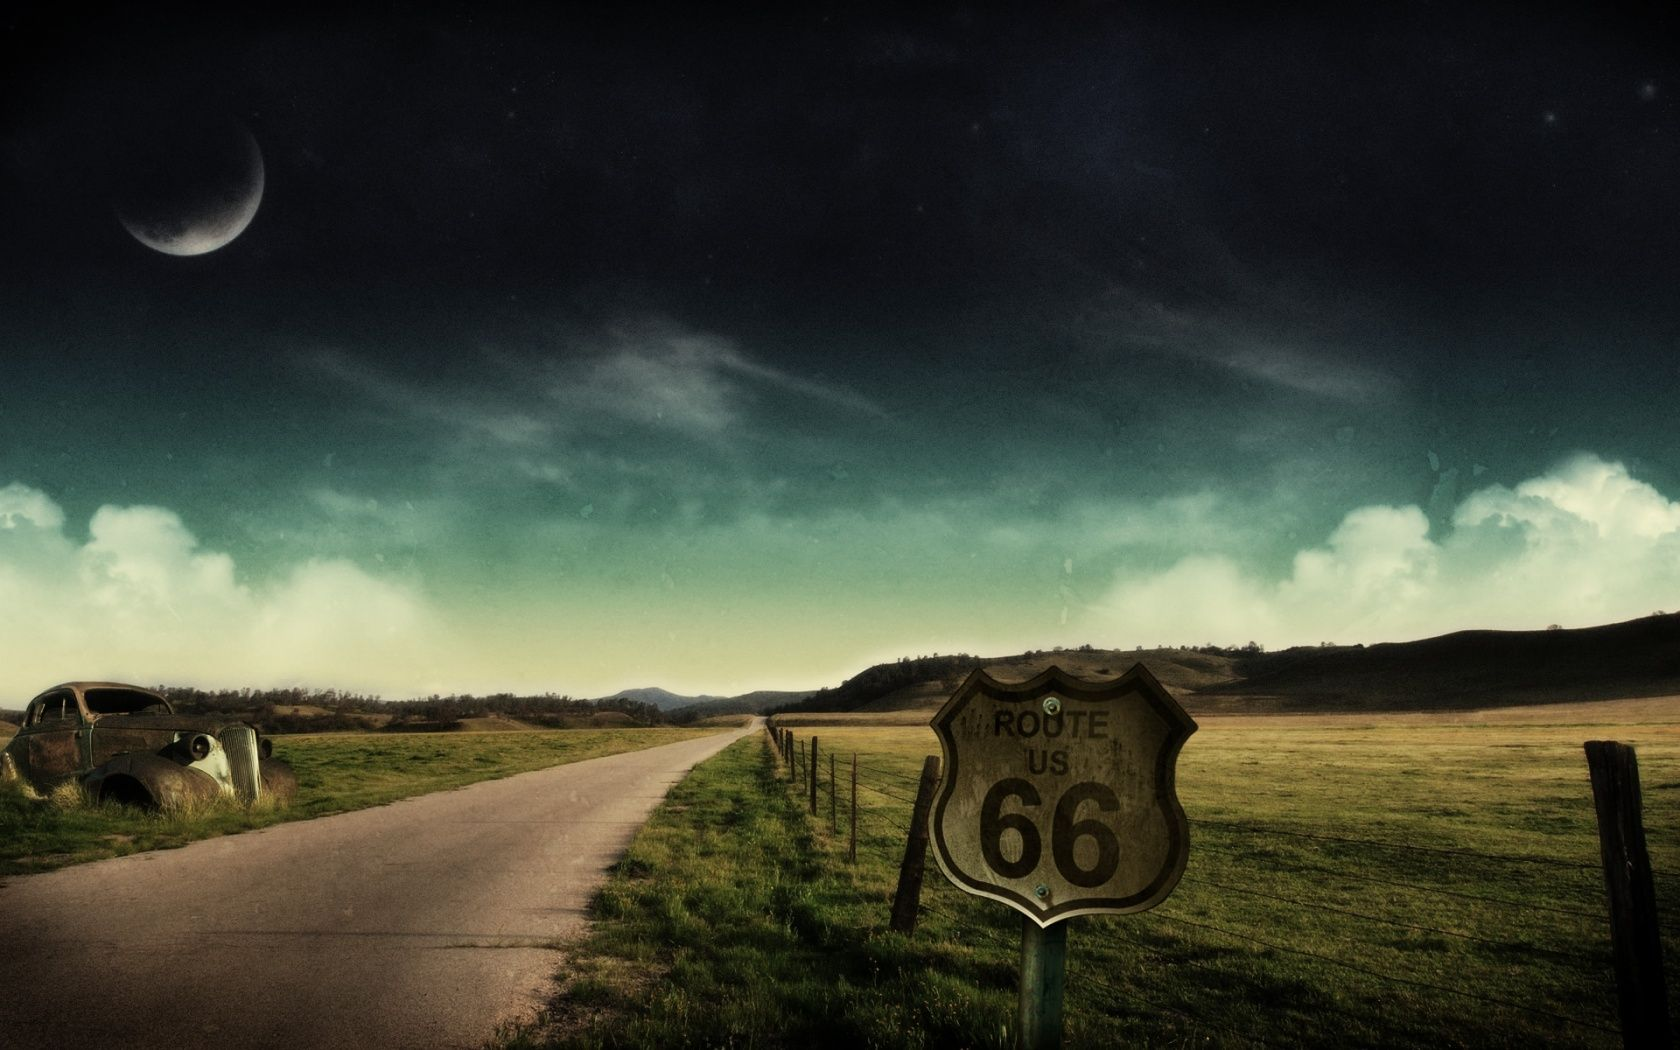 Get Your Kicks: Follow along on our Route 66 Retro Road Trip thumbnail